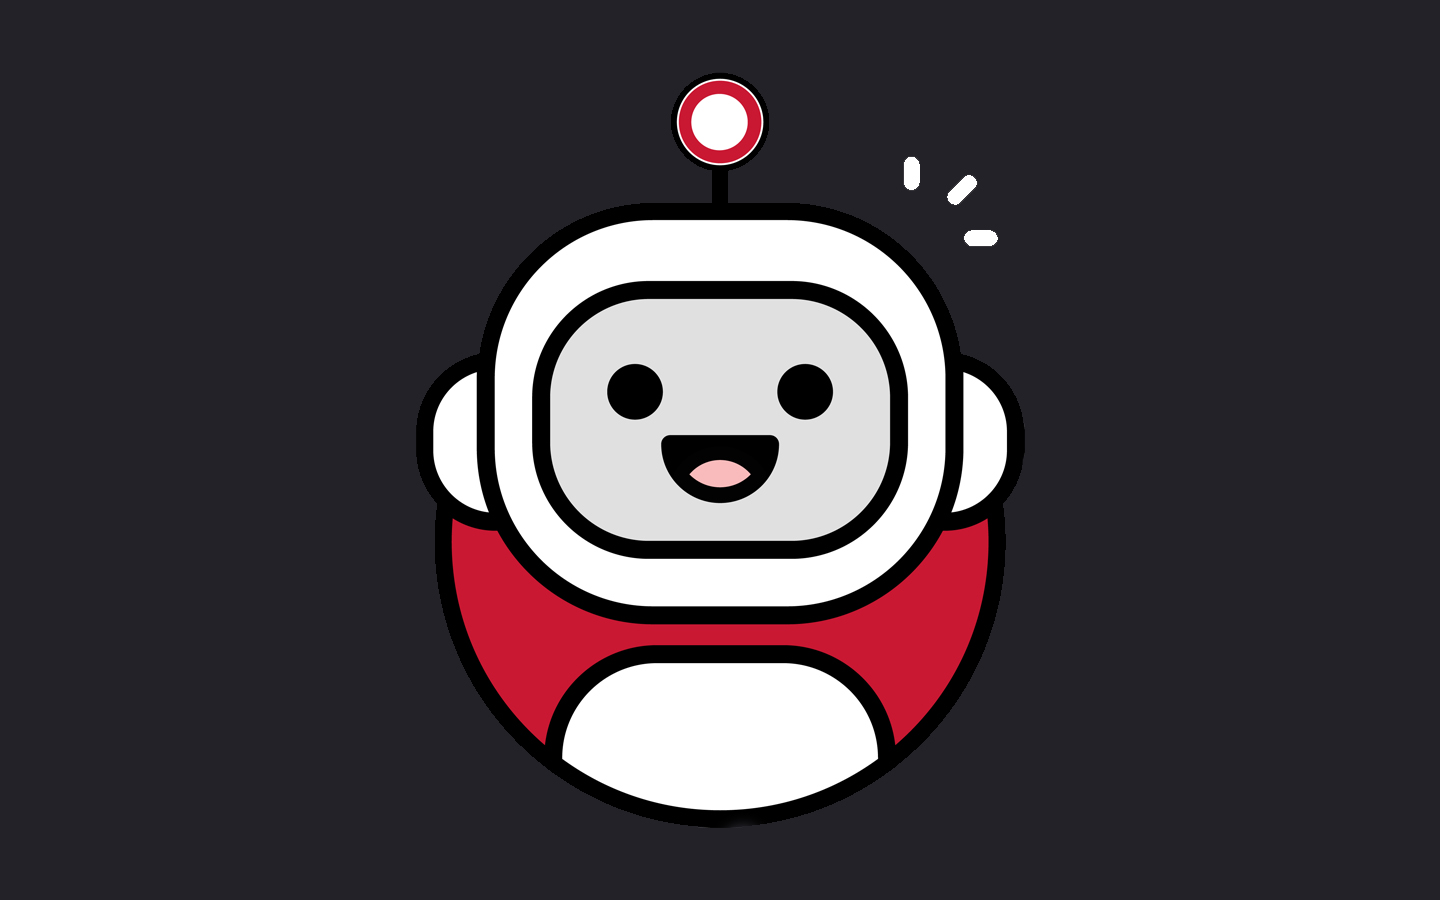 Default image of a smiling robot character on a black background.